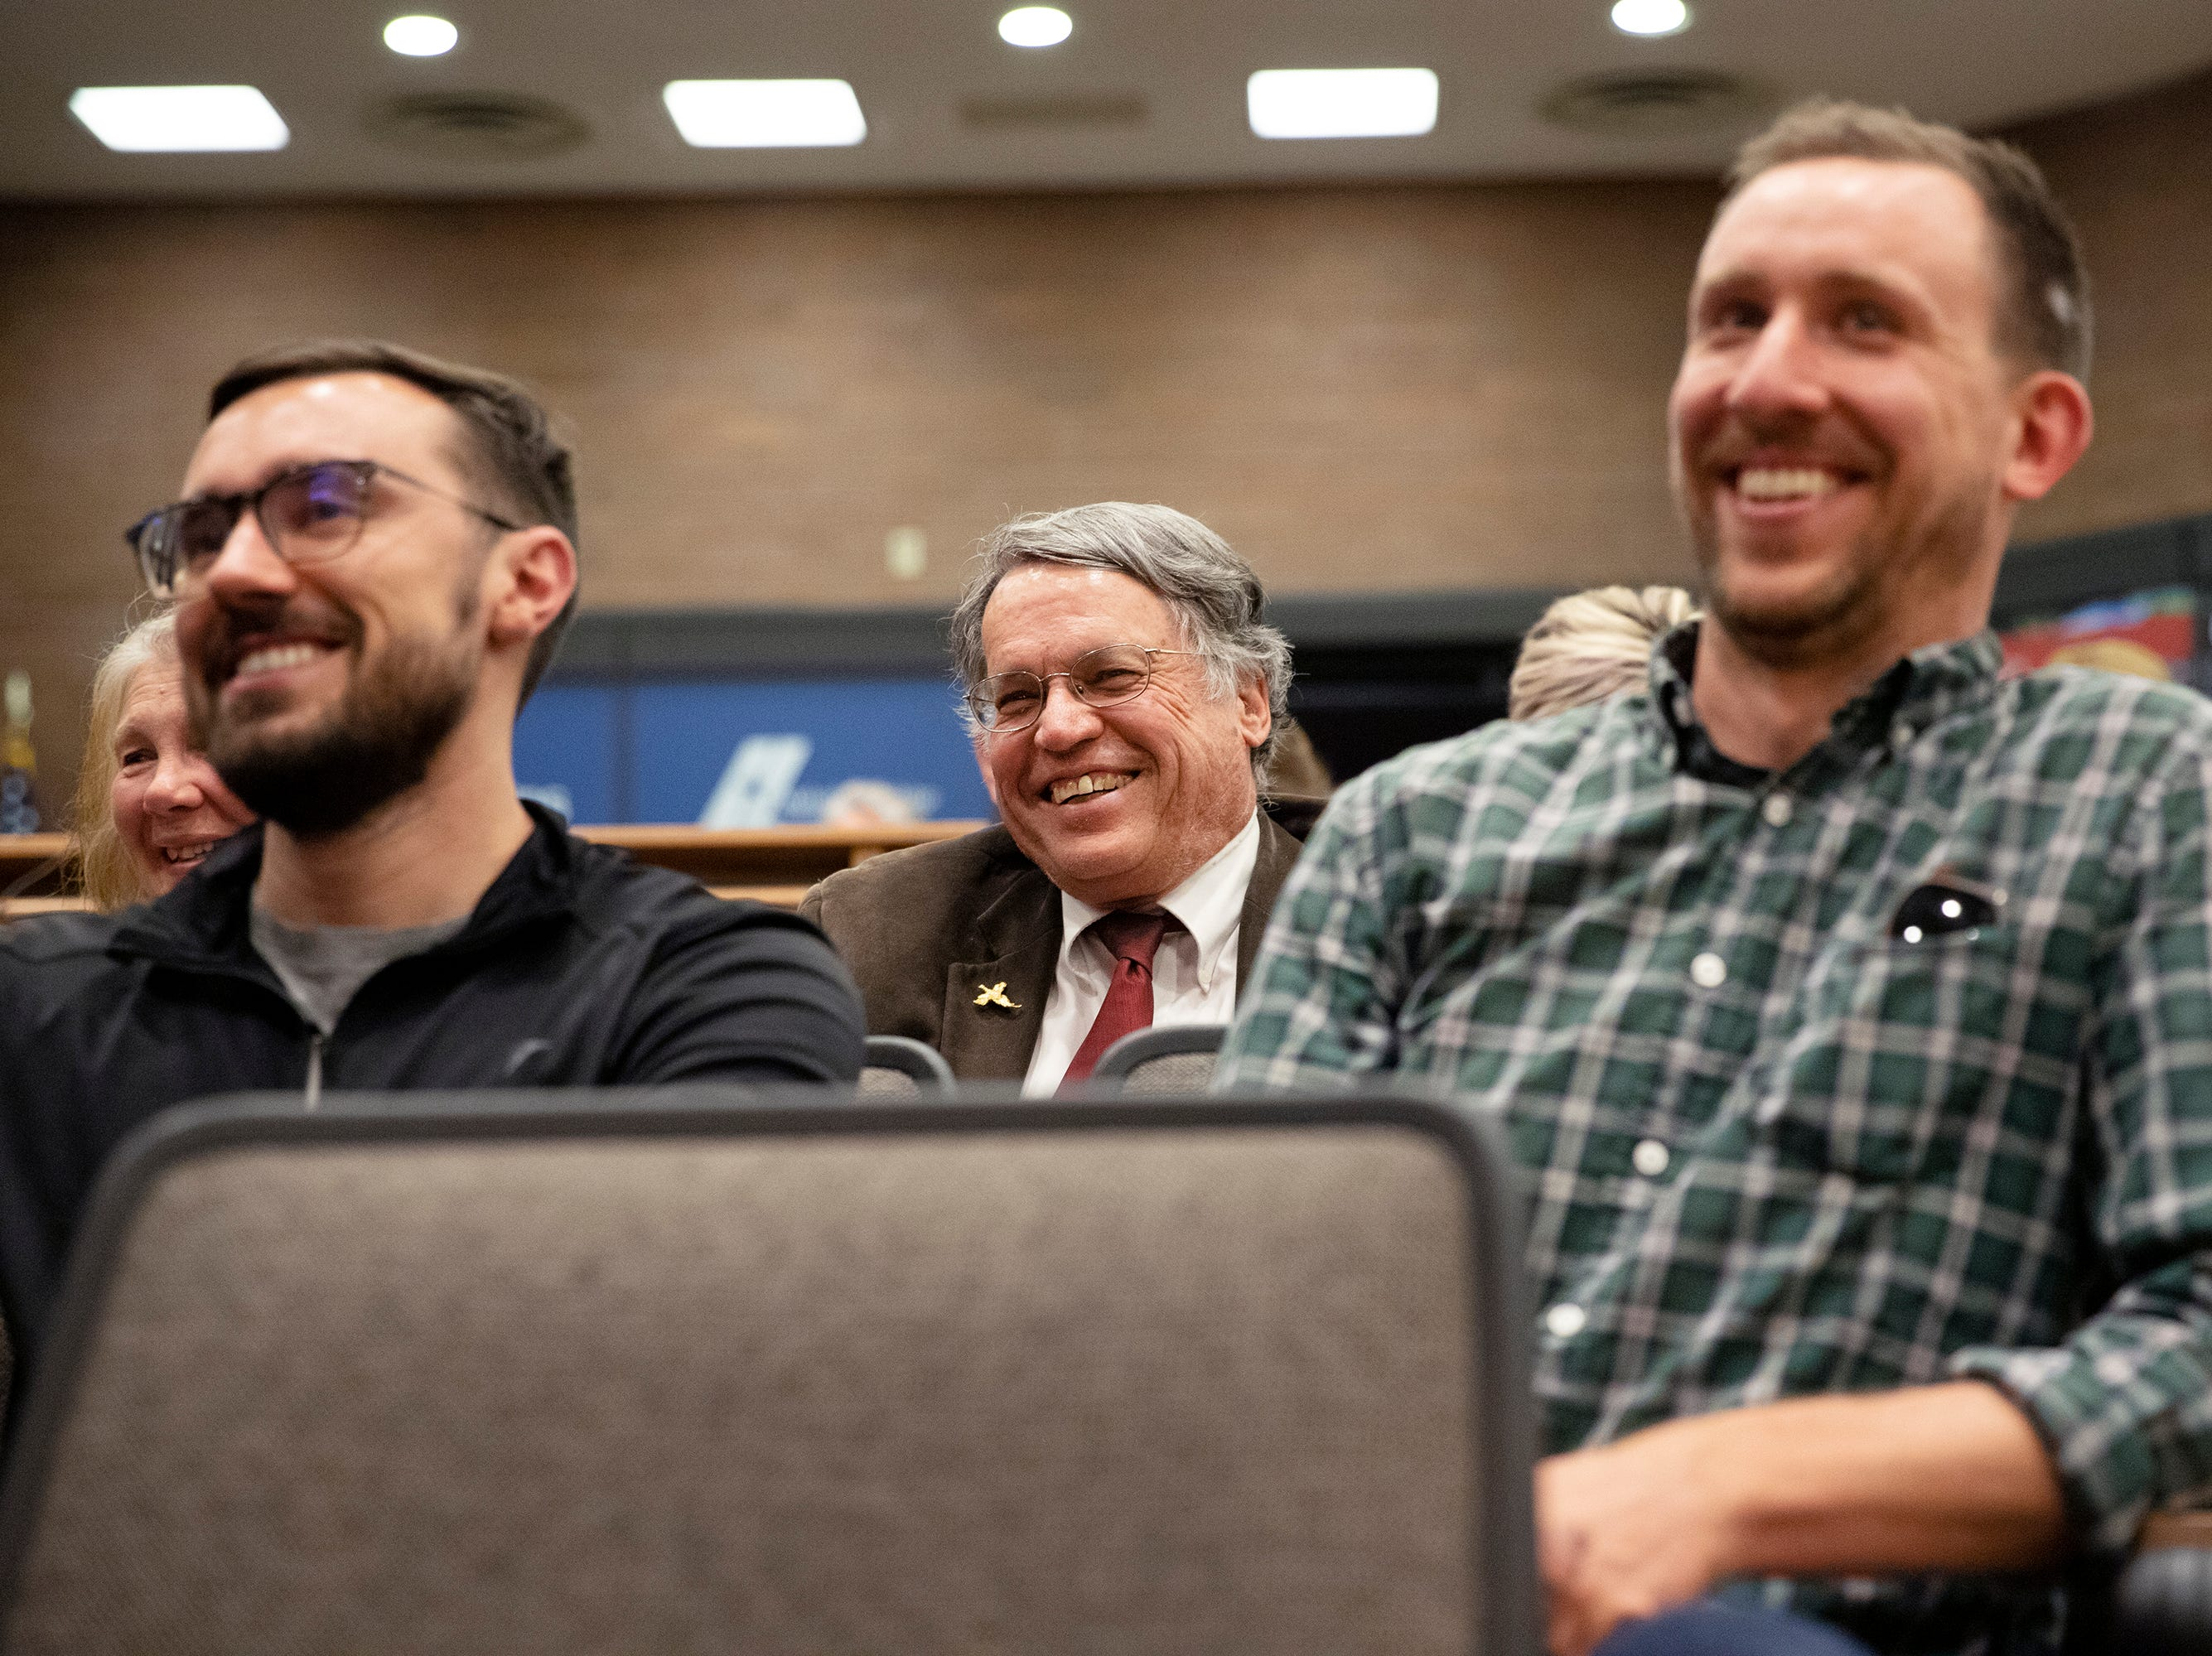 Former council member Gerry Horak, center, laughs as his colleagues share stories and thank him for his service to the community on April 23 at City Hall.